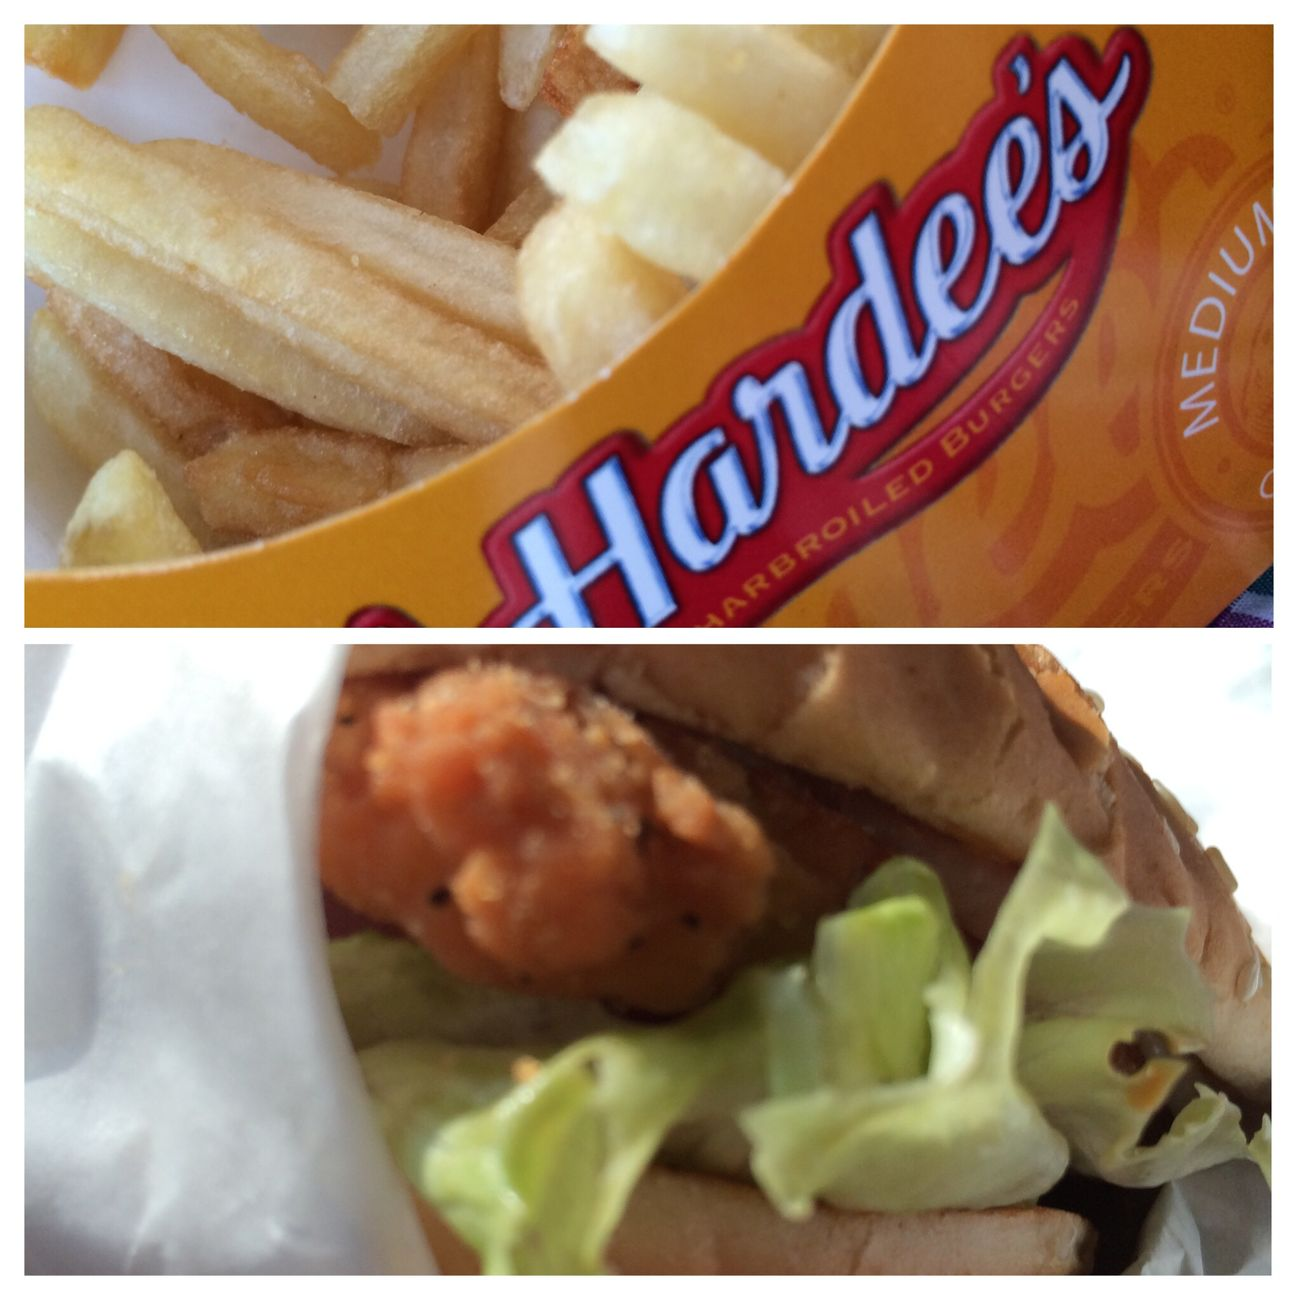 Hardees Food